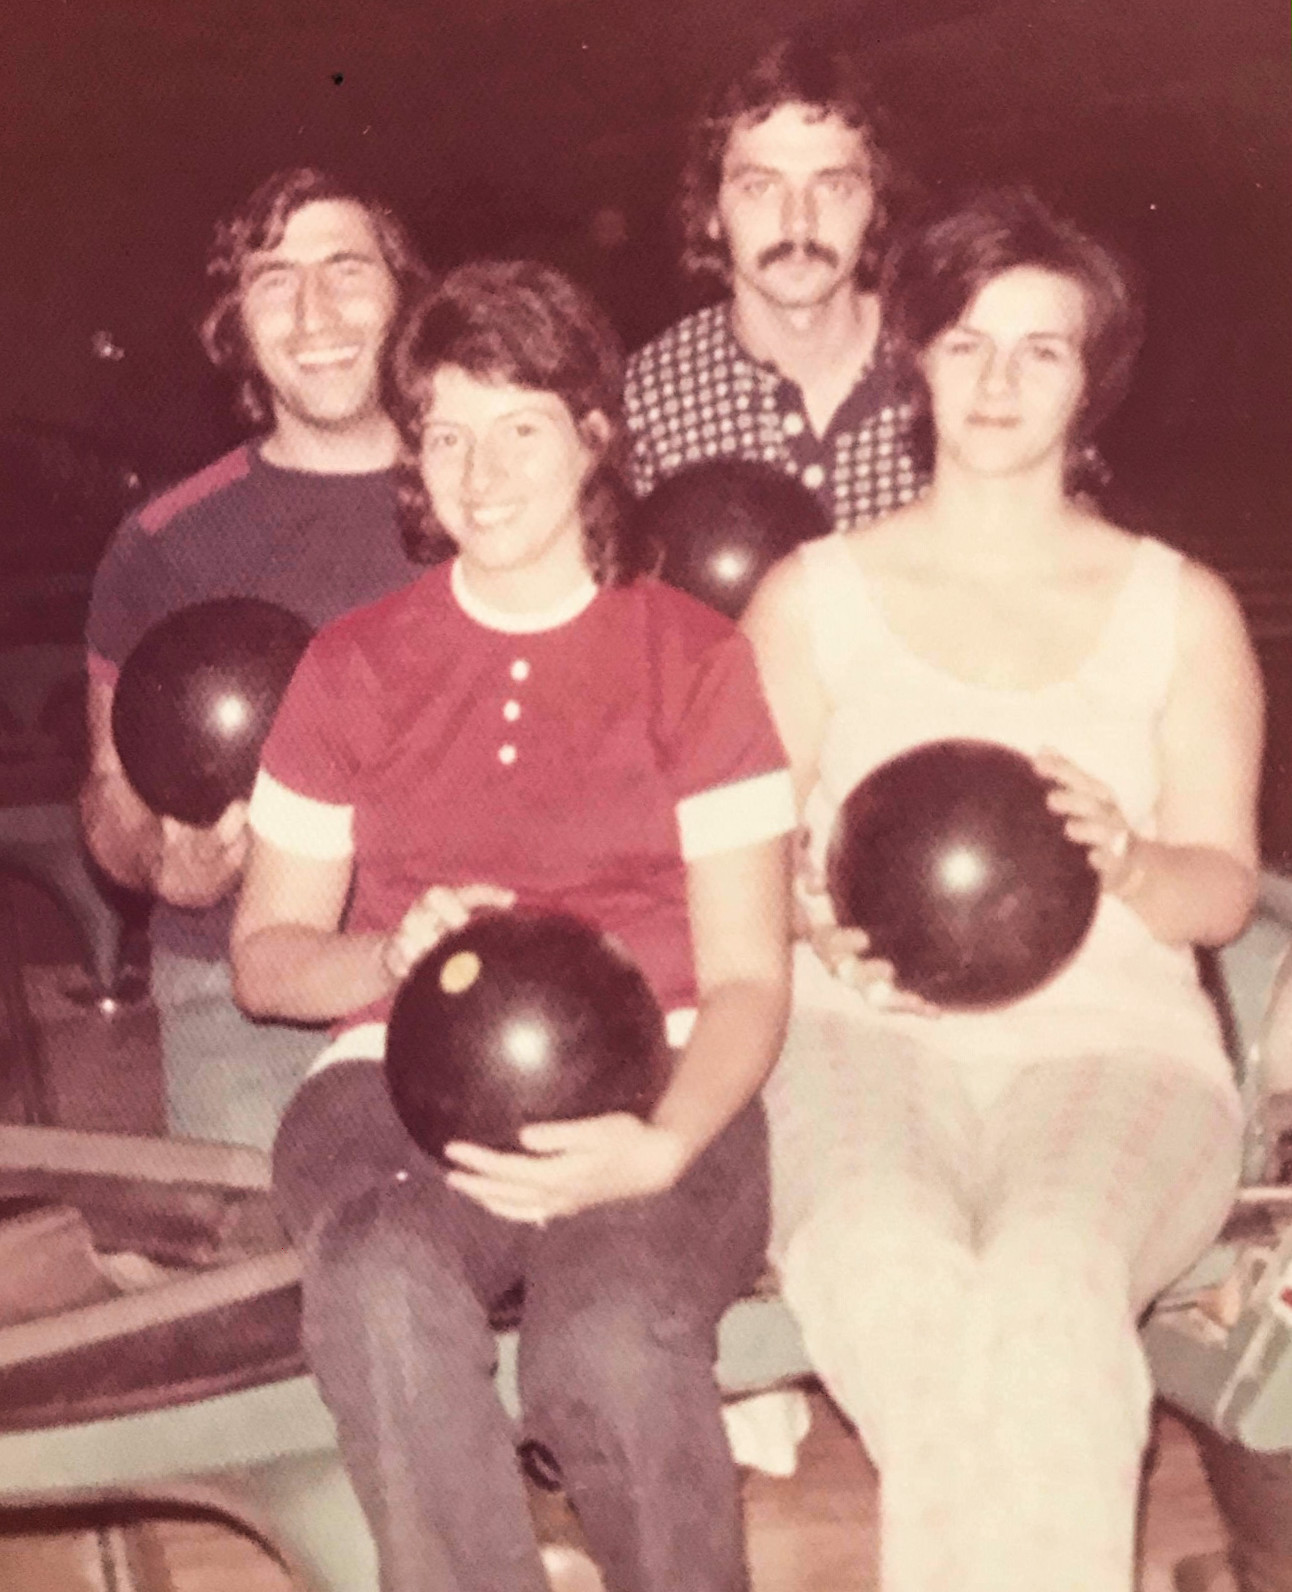 Bowling couples